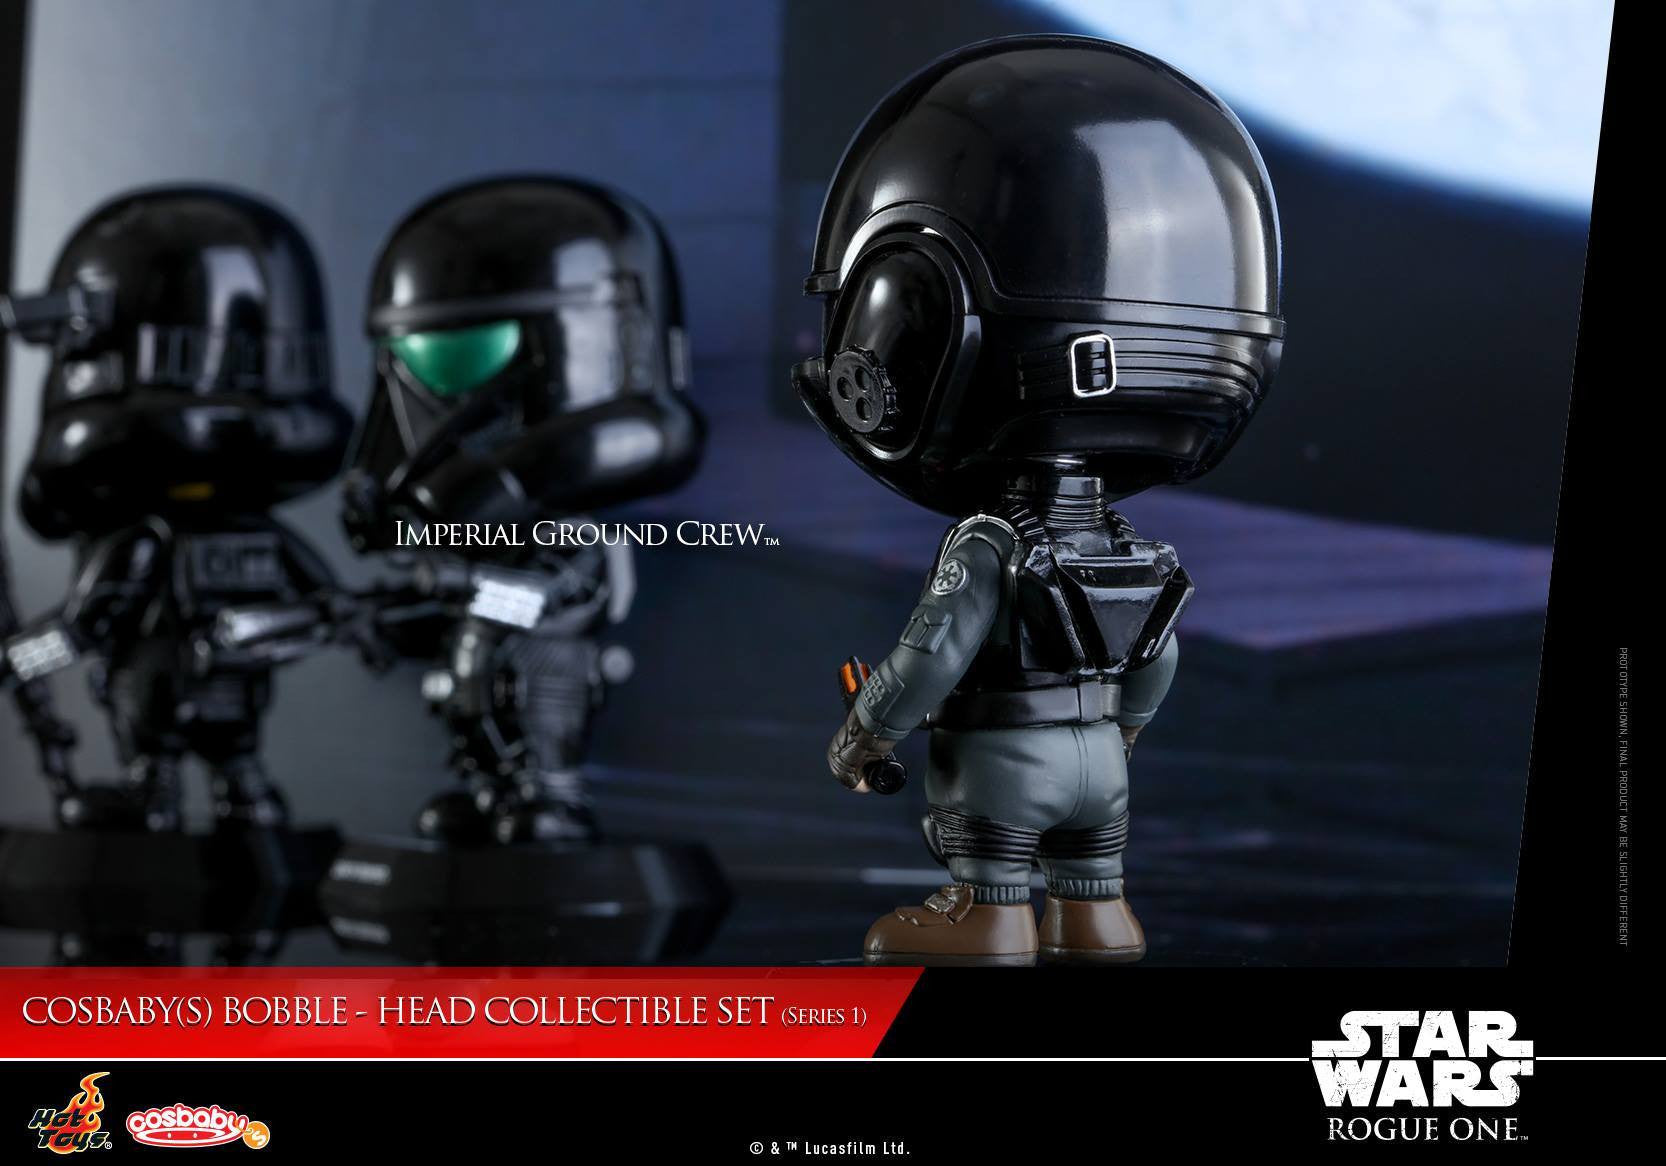 (IN STOCK) Hot Toys - COSB331 - Rogue One: A Star Wars Story - Imperial Ground Crew Cosbaby Bobble-Head - Marvelous Toys - 3